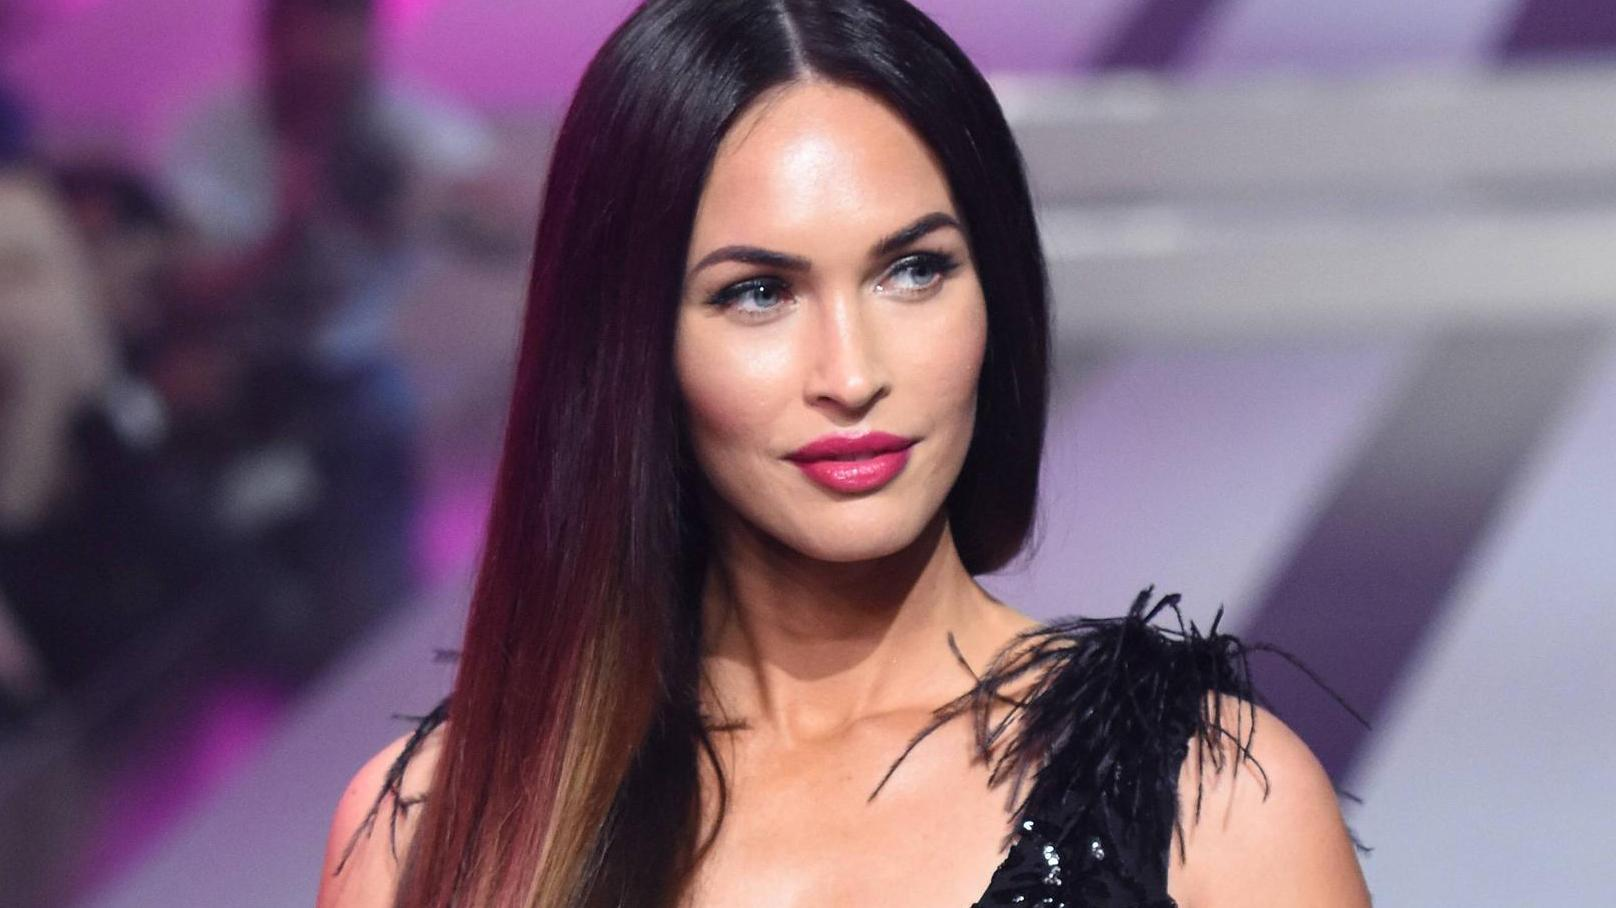 Megan Fox one of Hollywoods hottest women 13 1 1